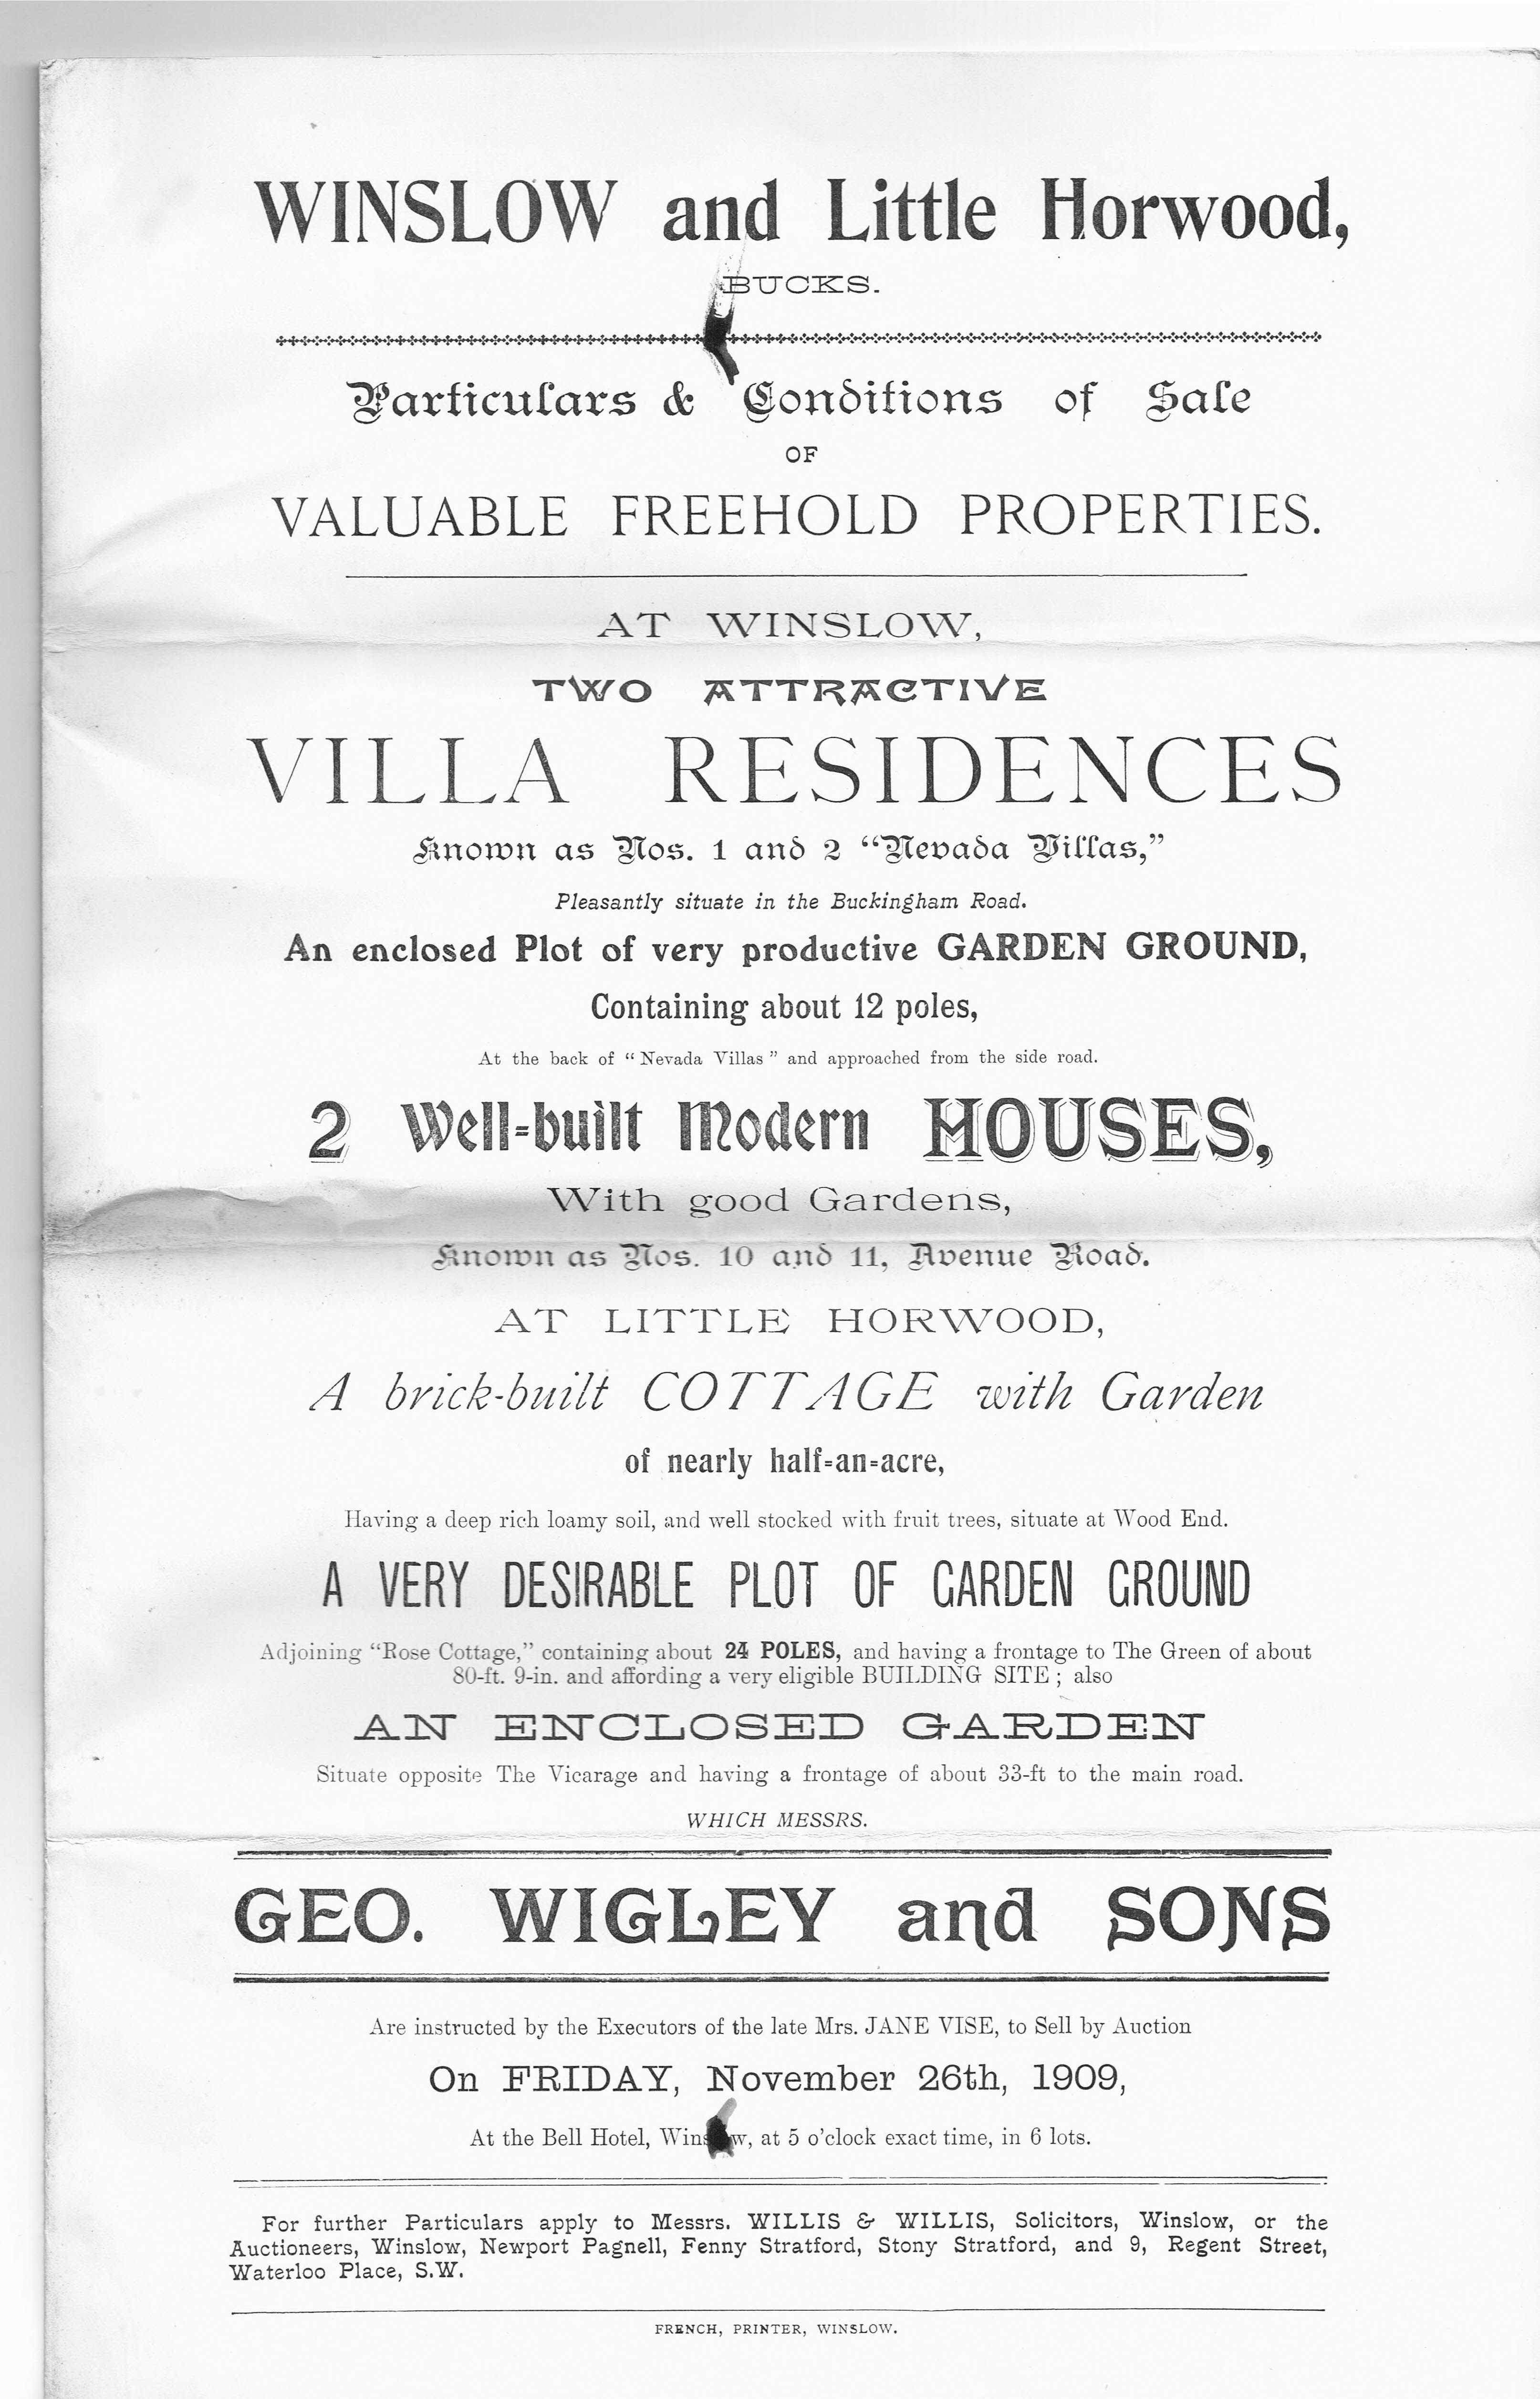 Sale of Nevada Villas 1909 p1